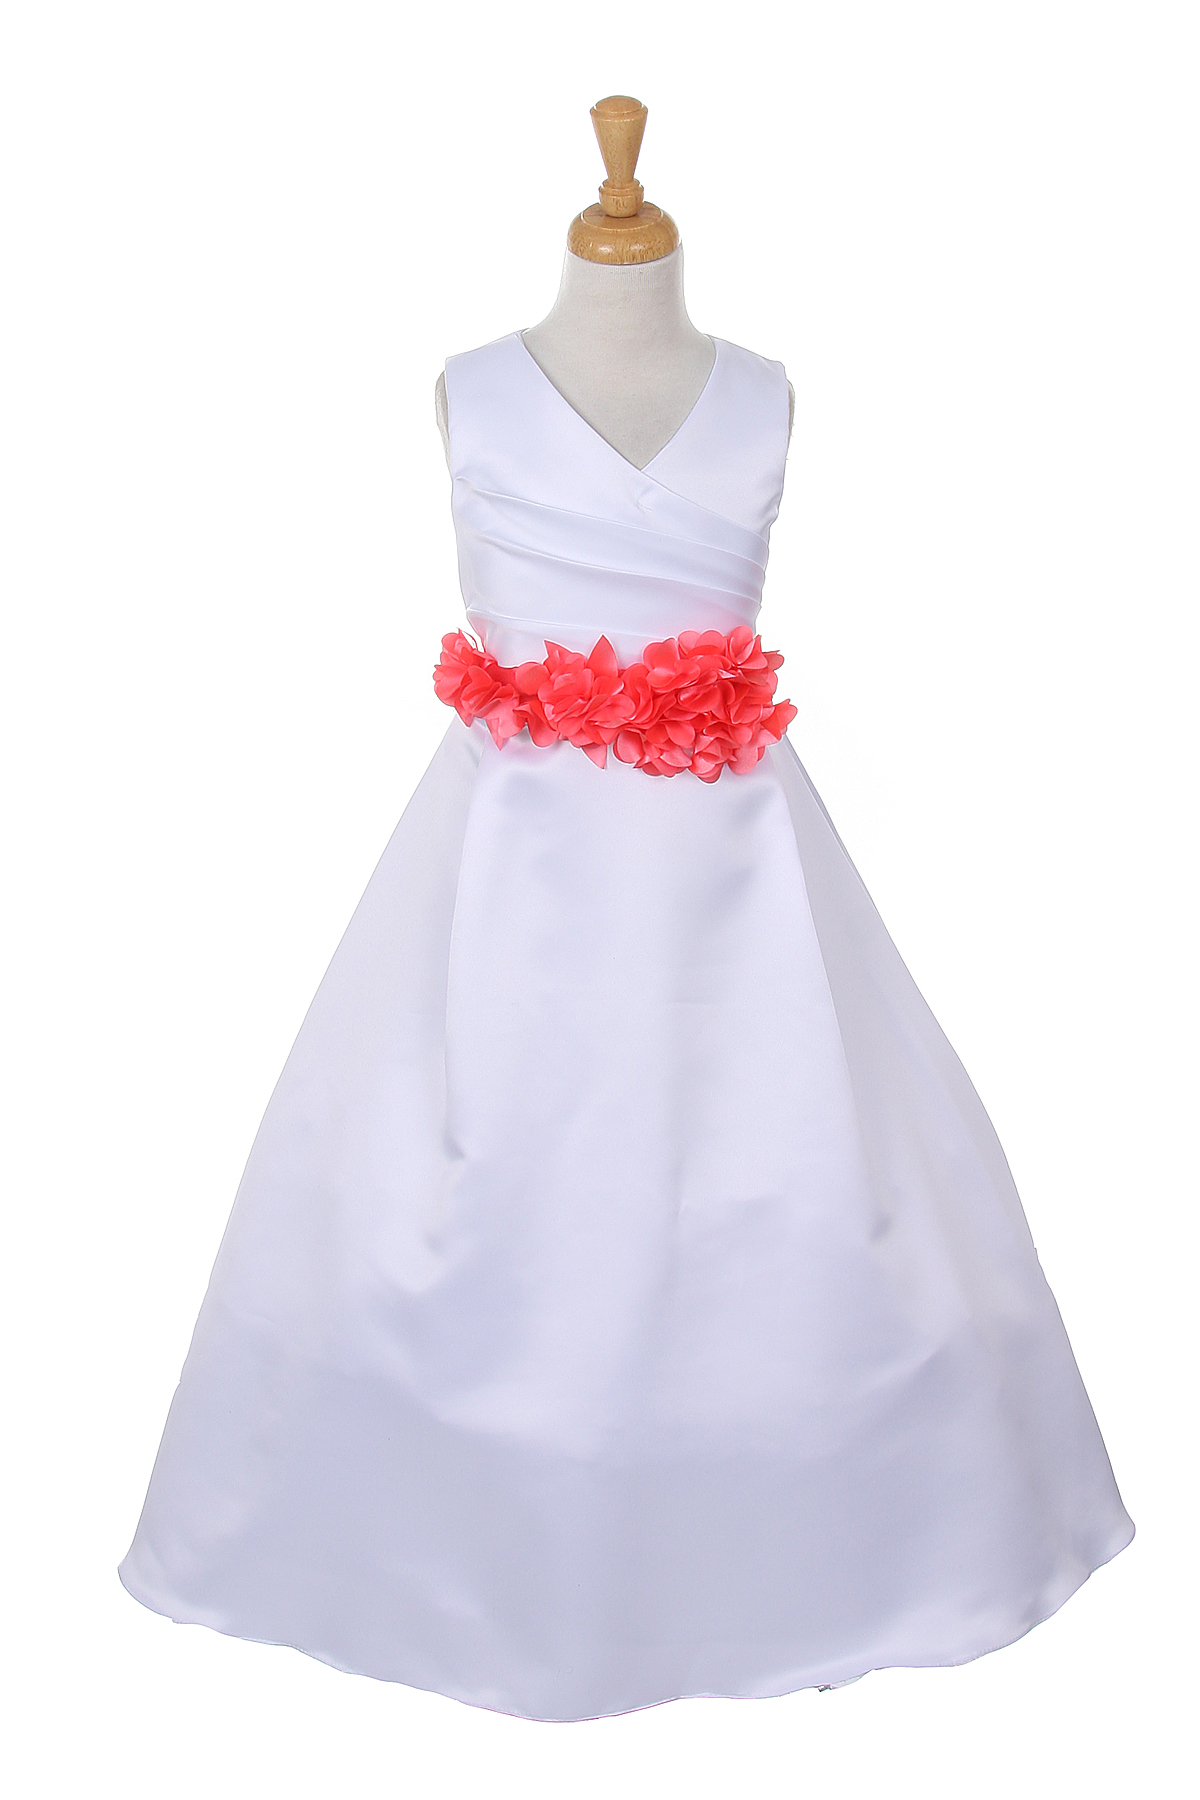 white dress with coral flower sash